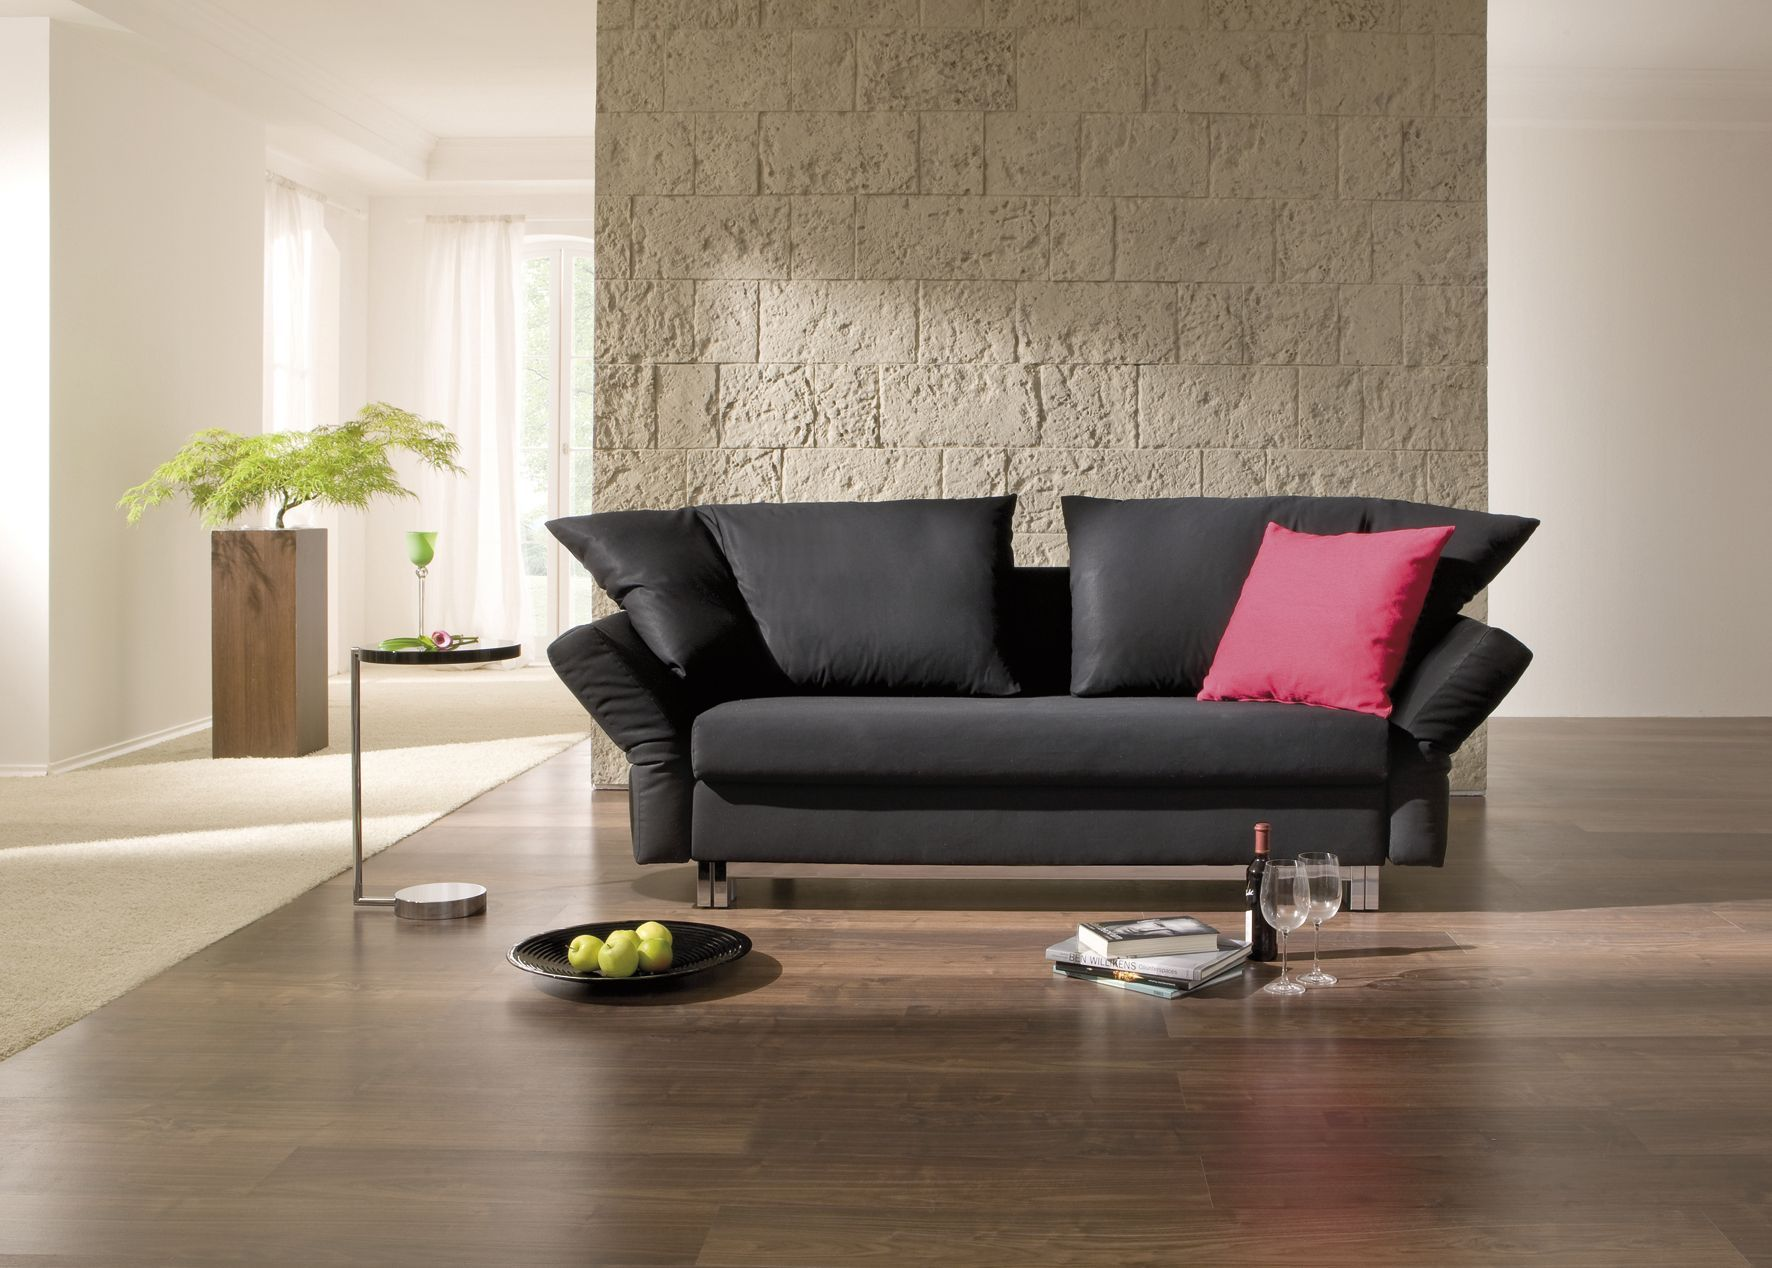 Cool Sofa Design Comtemporary Best Sofas Black Ideas Furniture Inspiration